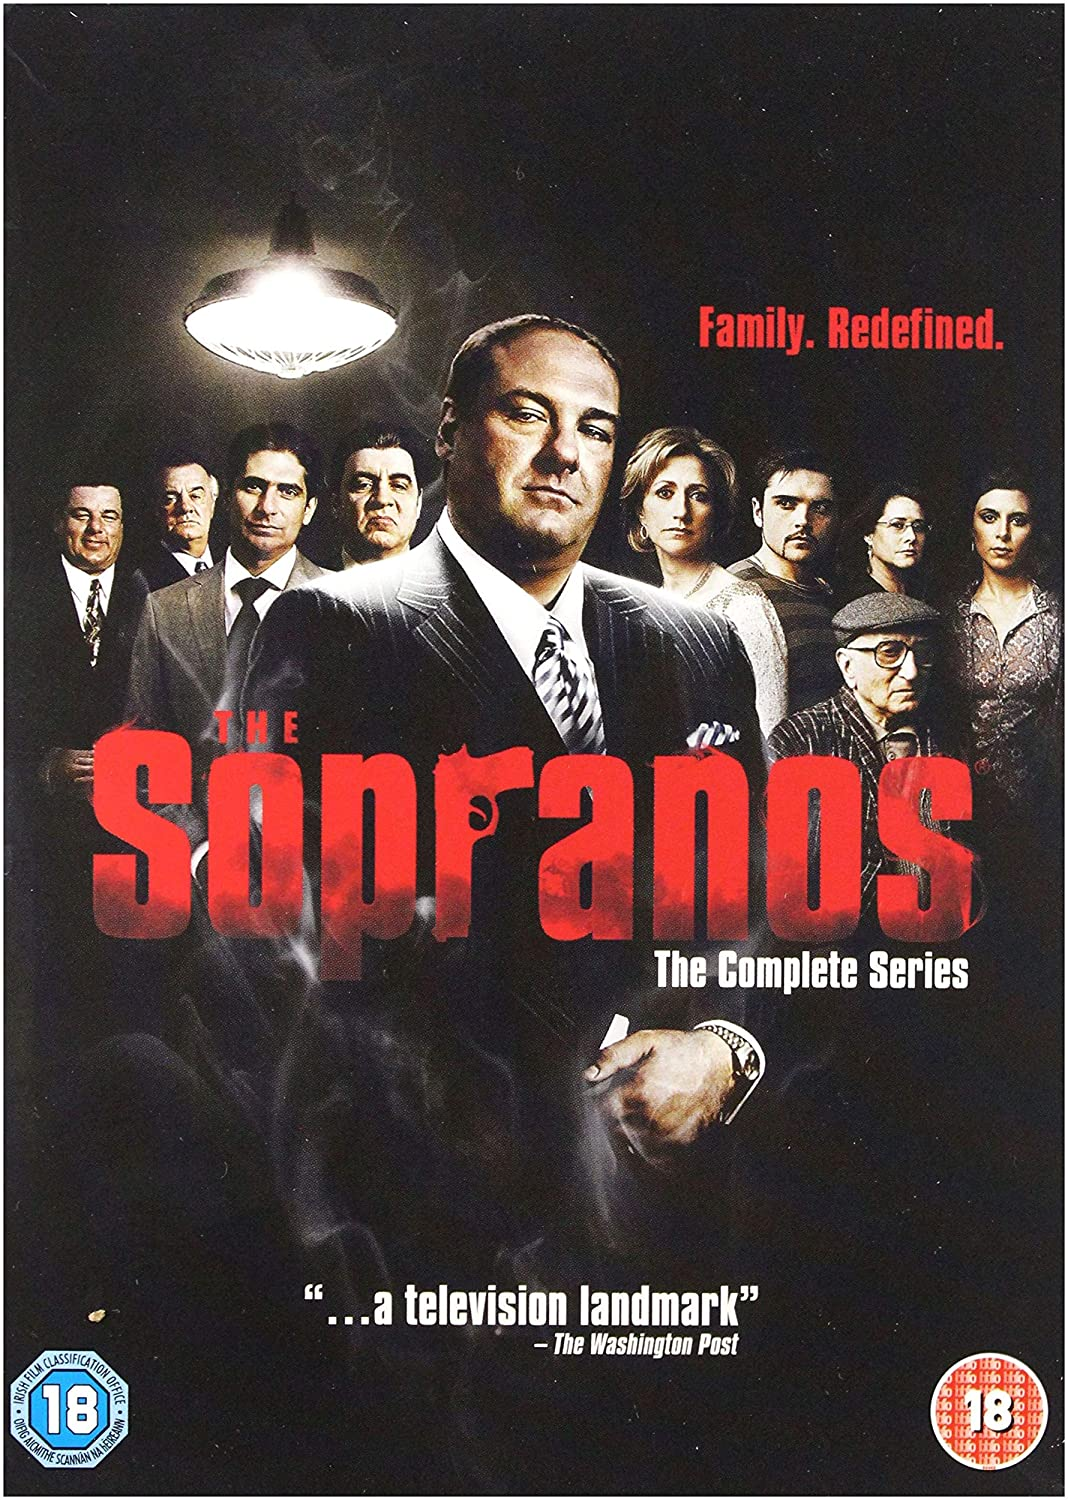 The Sopranos kapak